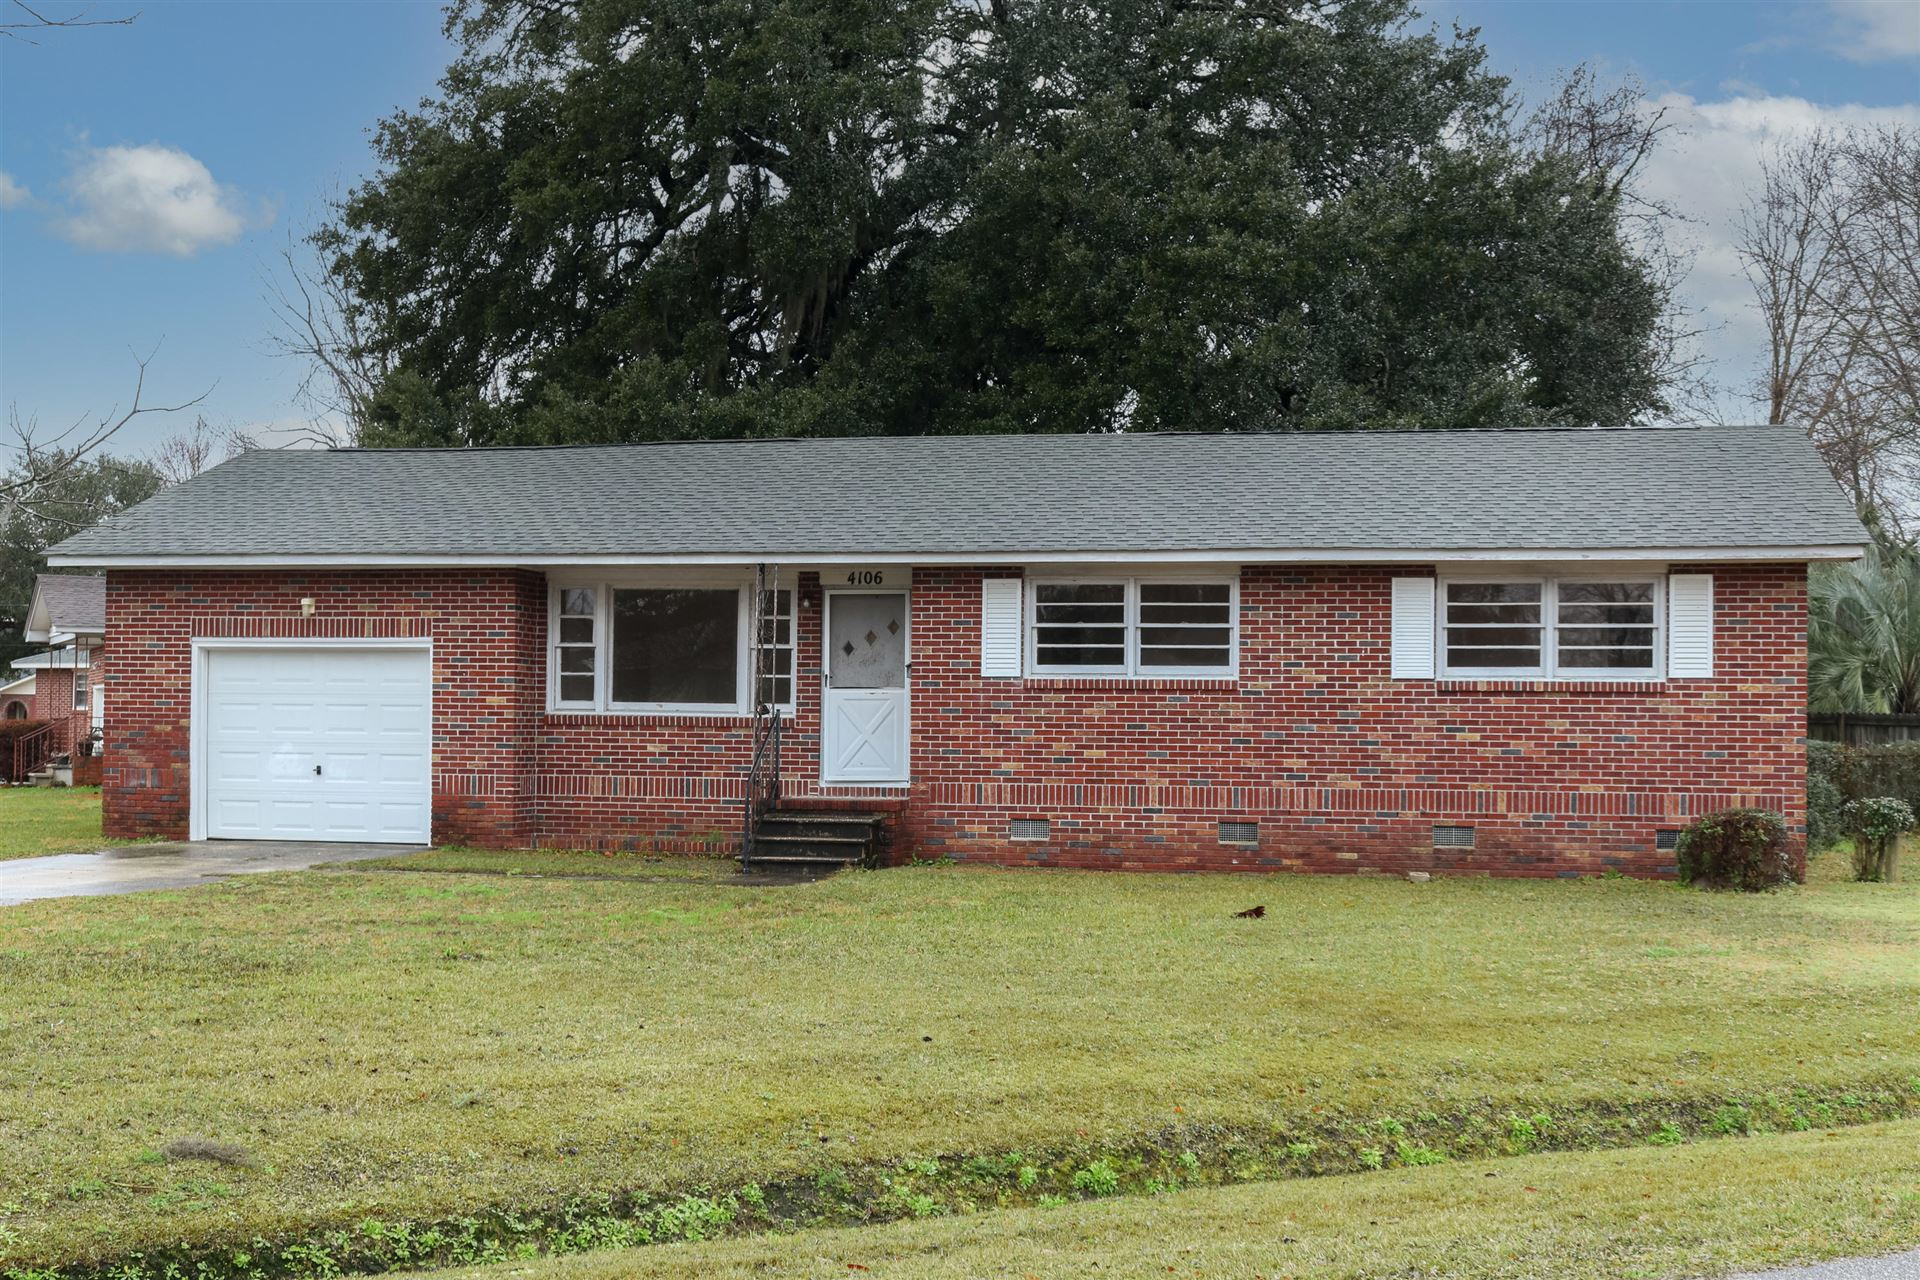 Photo of 4106 Olivia Drive, North Charleston, SC 29418 (MLS # 21004833)